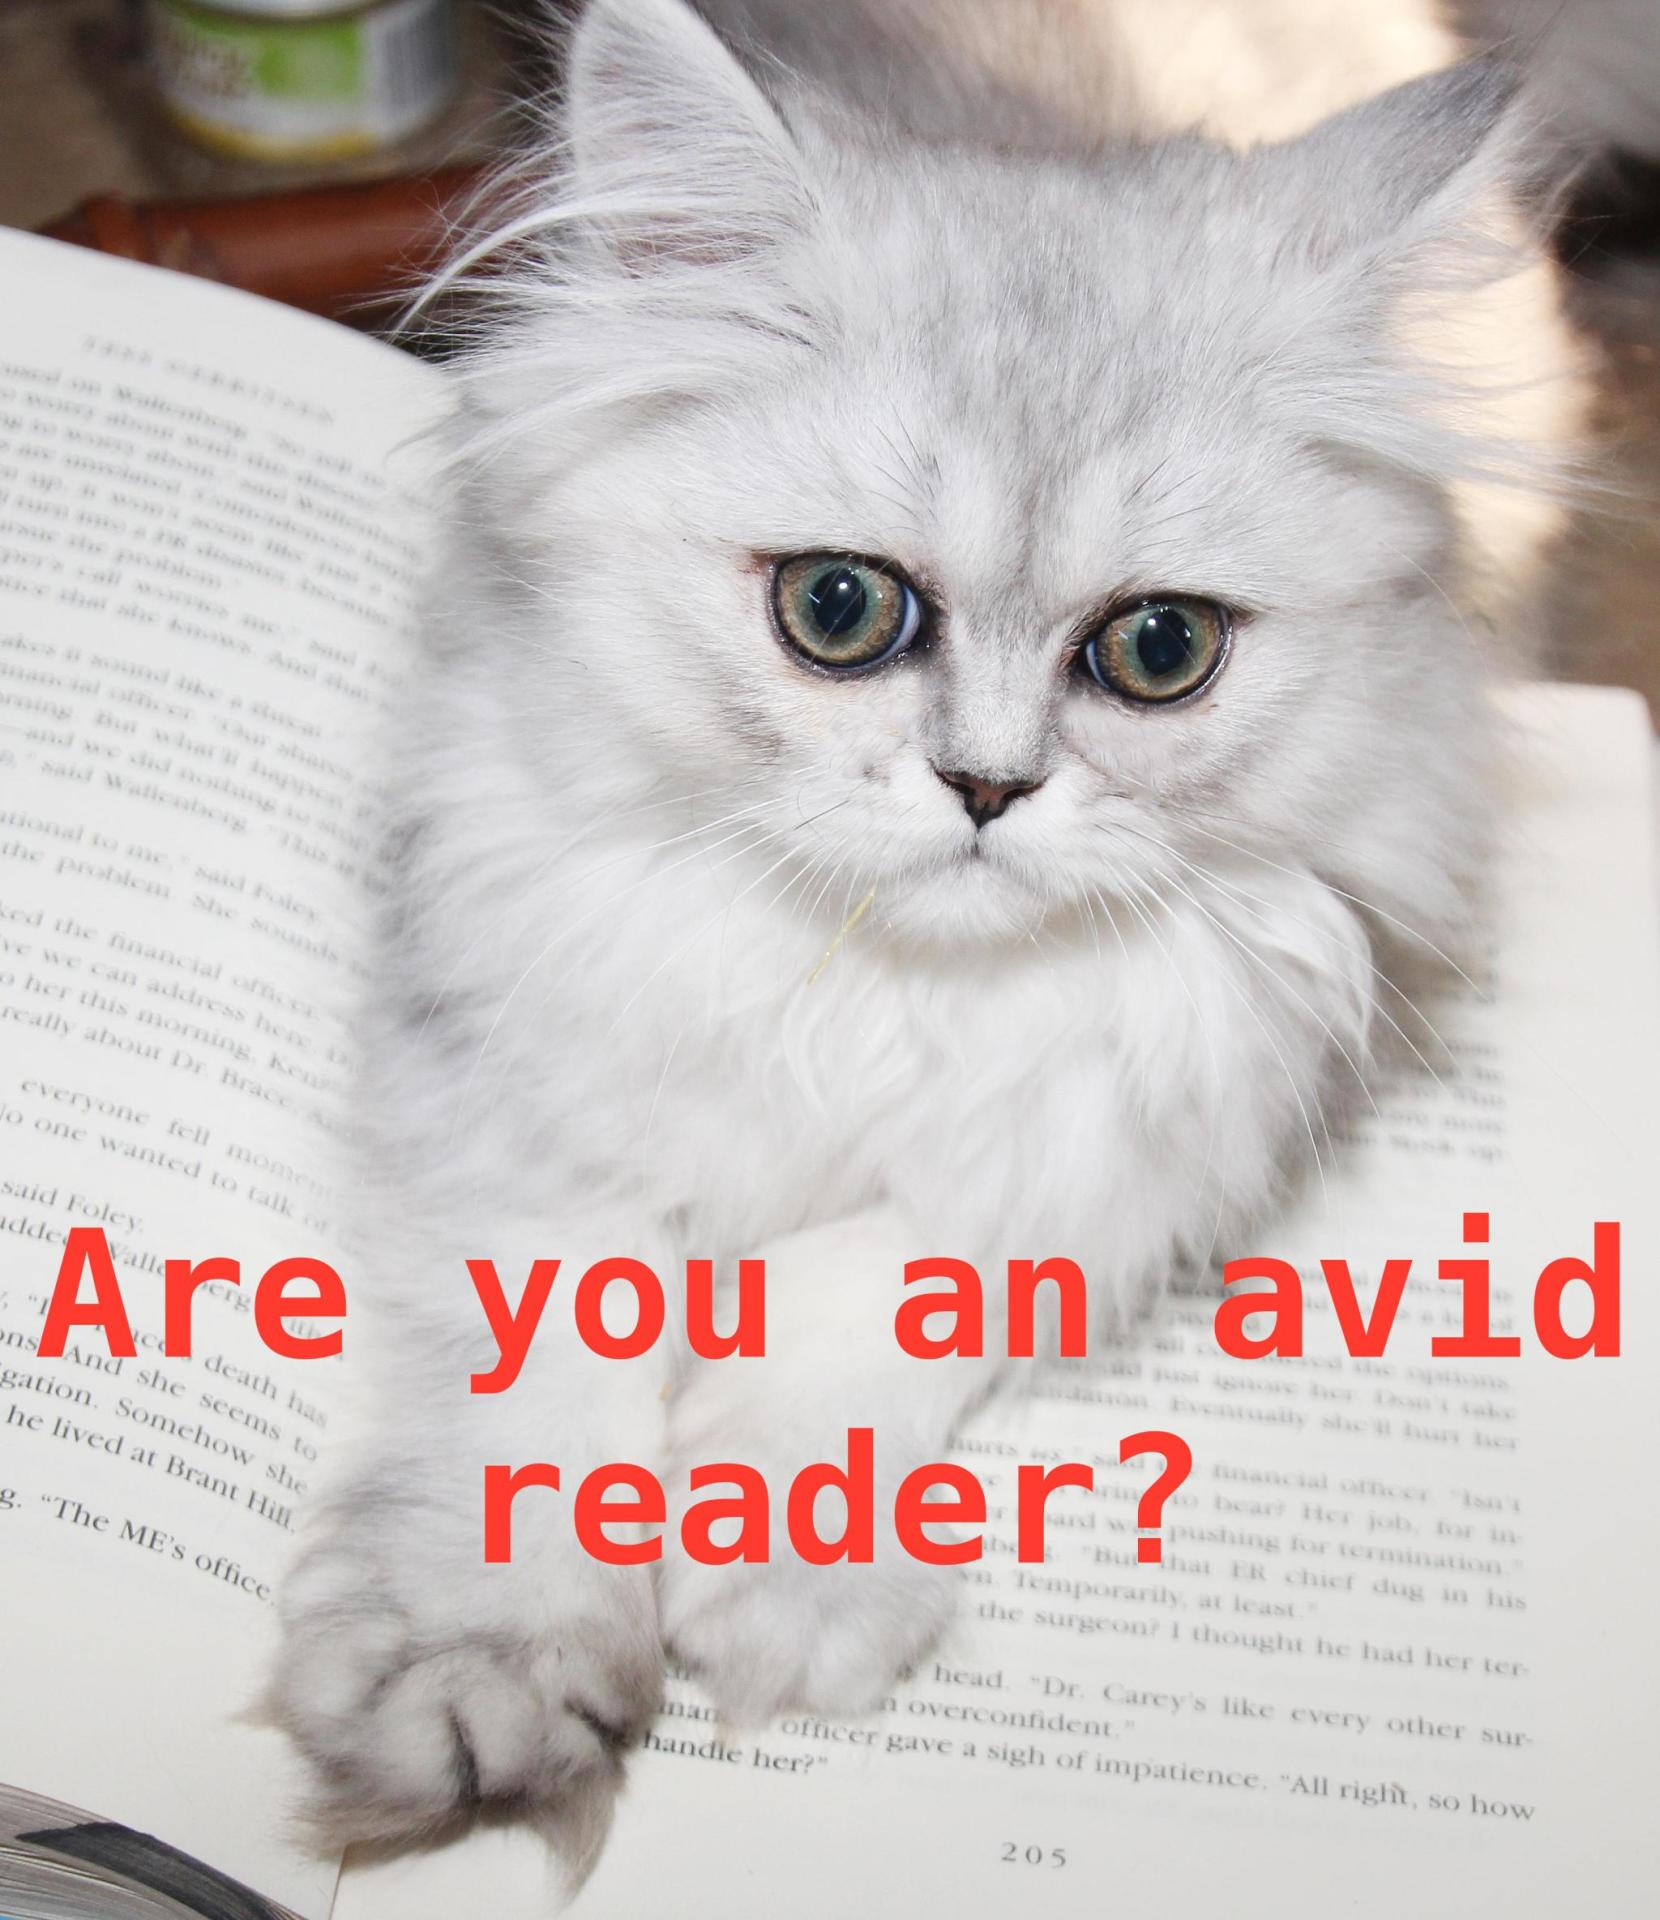 Are You An Avid Reader?